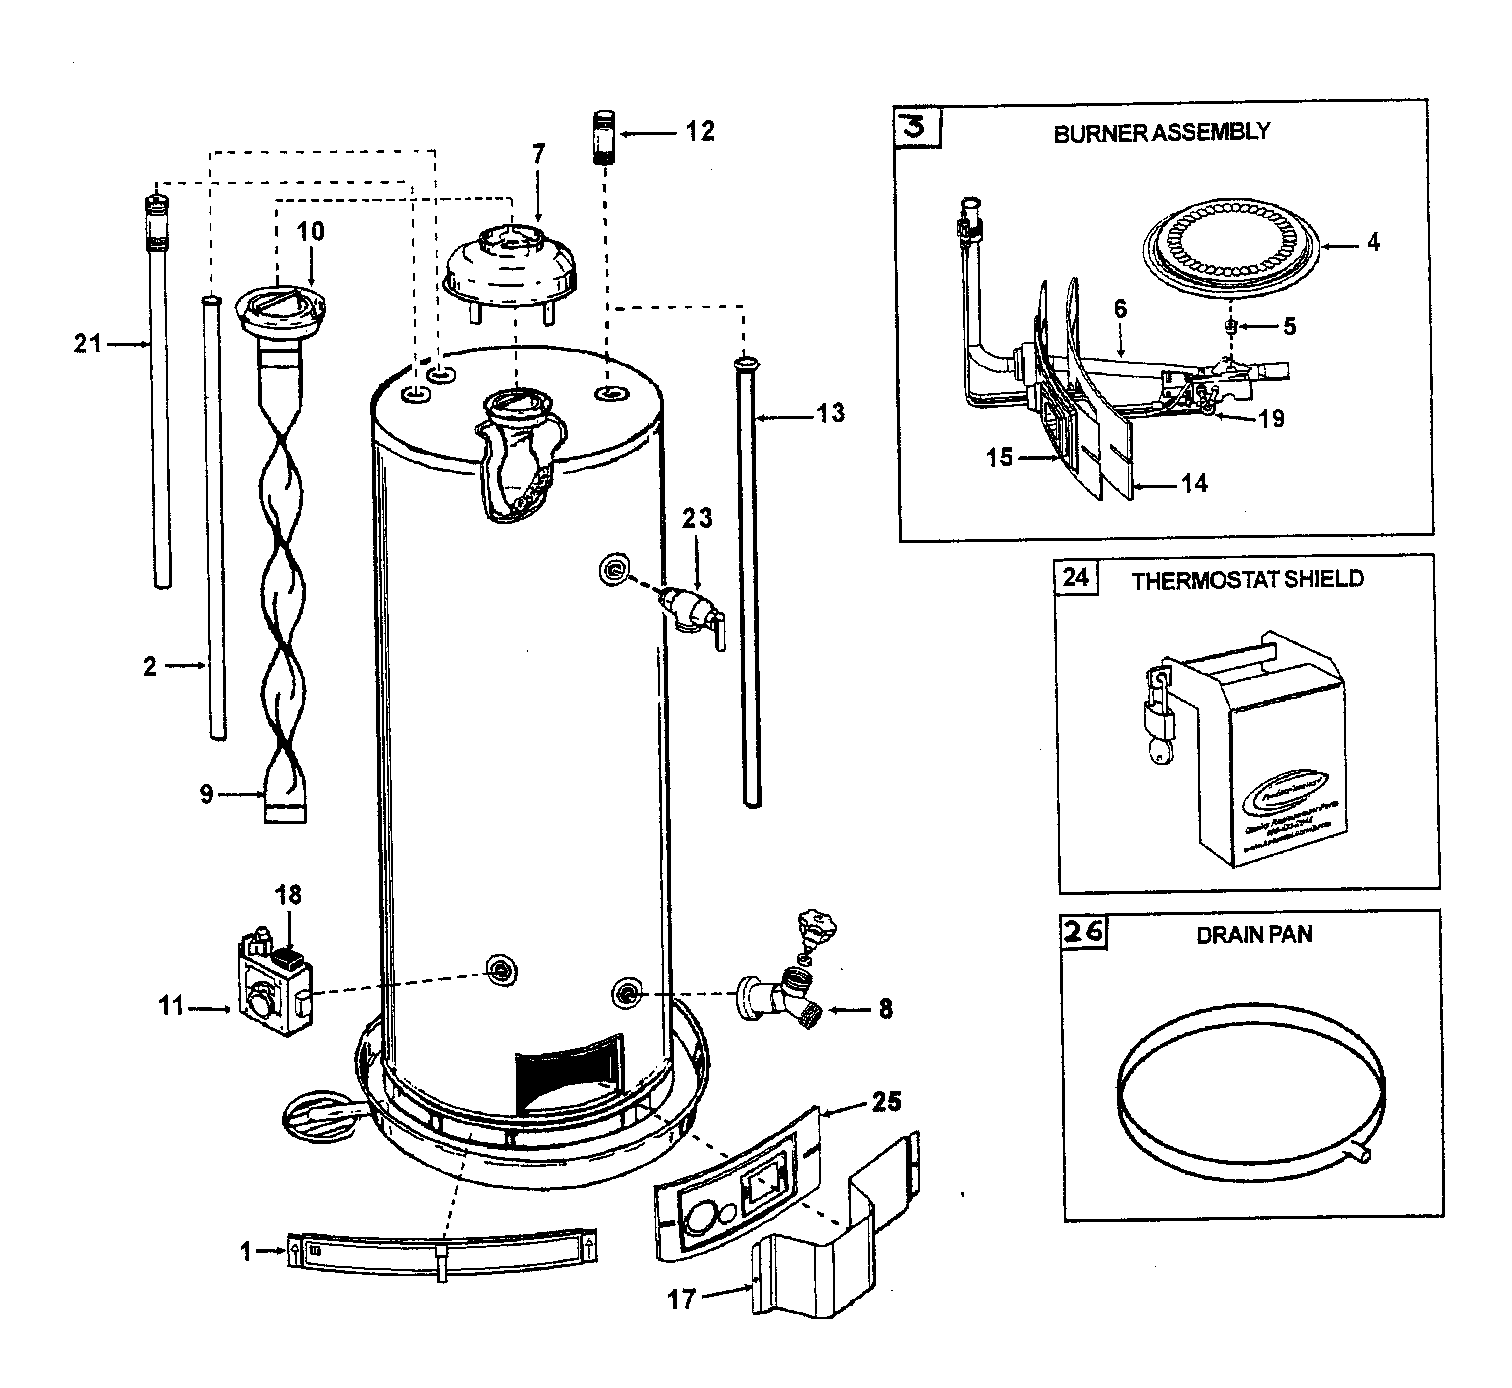 WATER HEATER Diagram & Parts List for Model xgv50l Aosmith